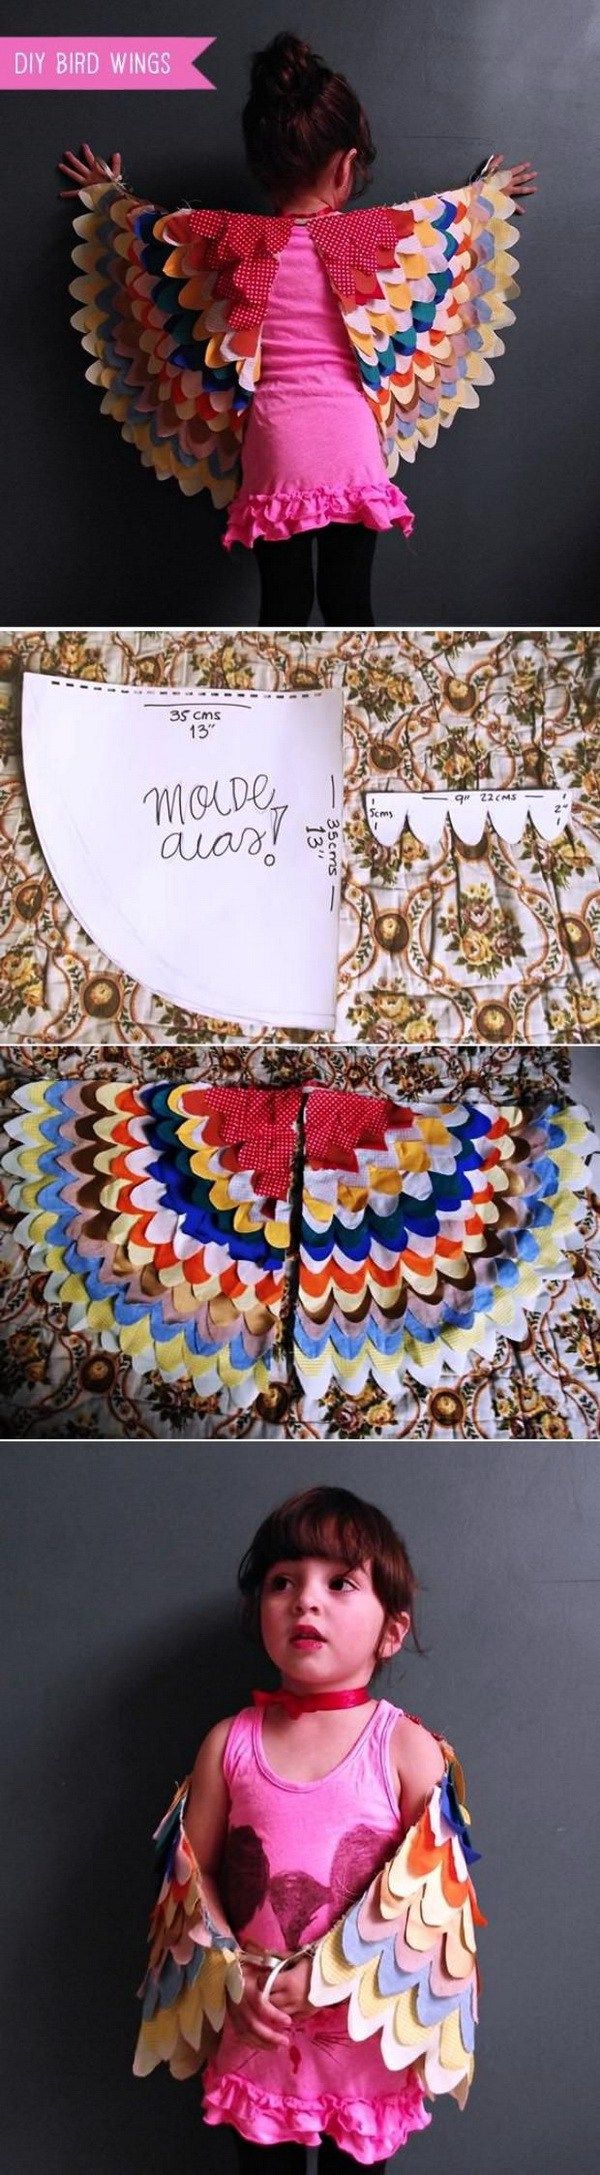 how to make bird wings costume